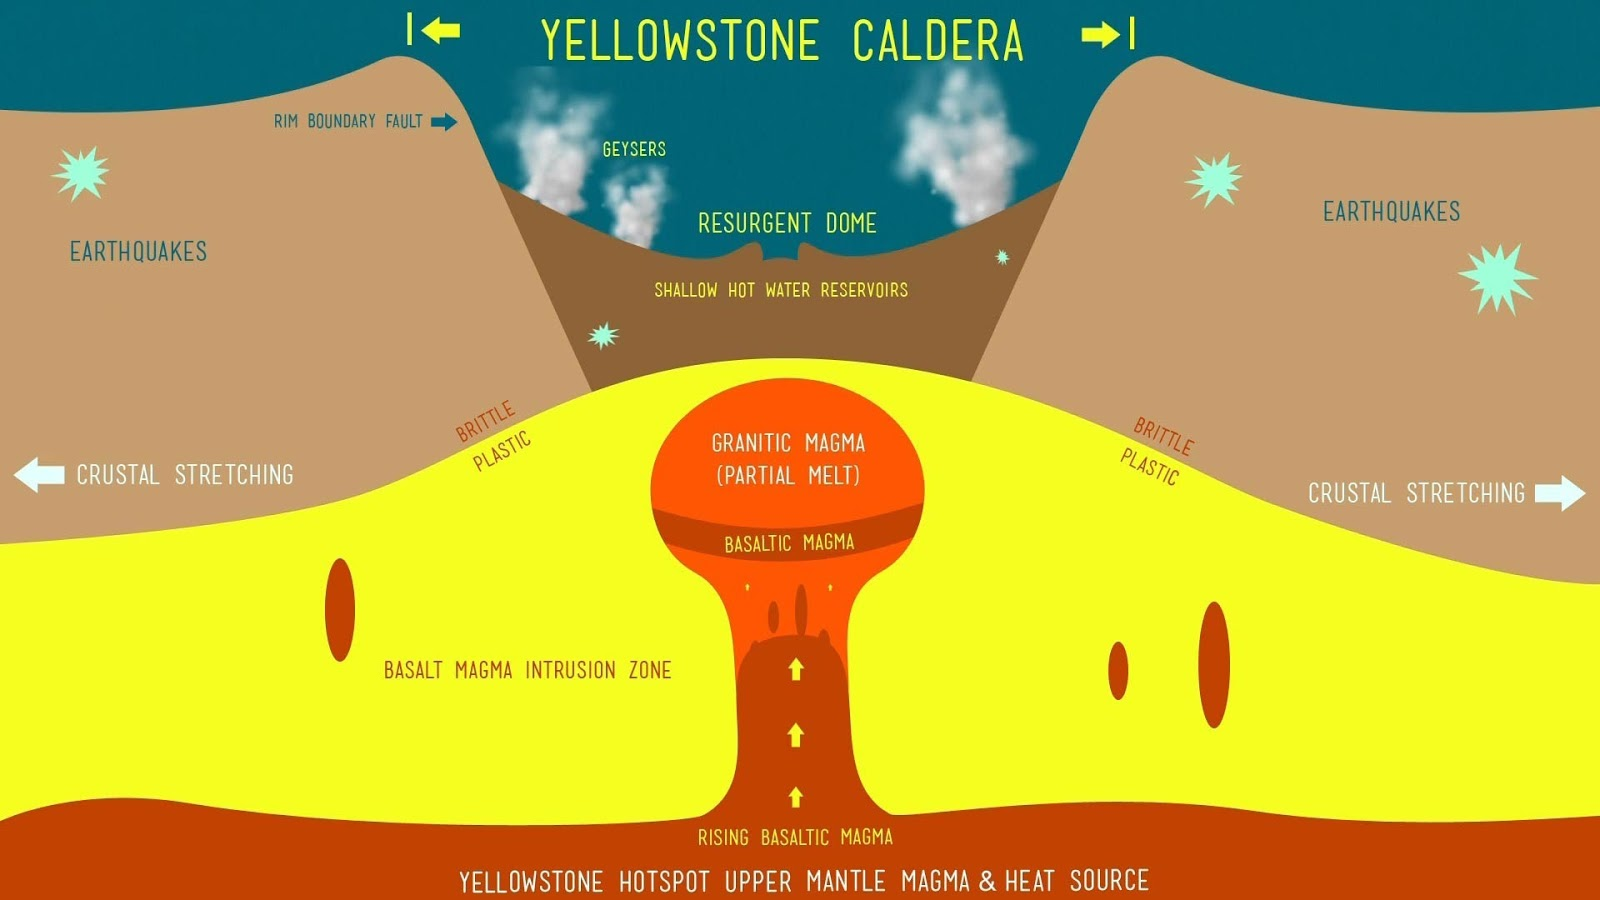 caldera volcano diagram molecular orbital for cl2 study challenges widely accepted theory of yellowstone